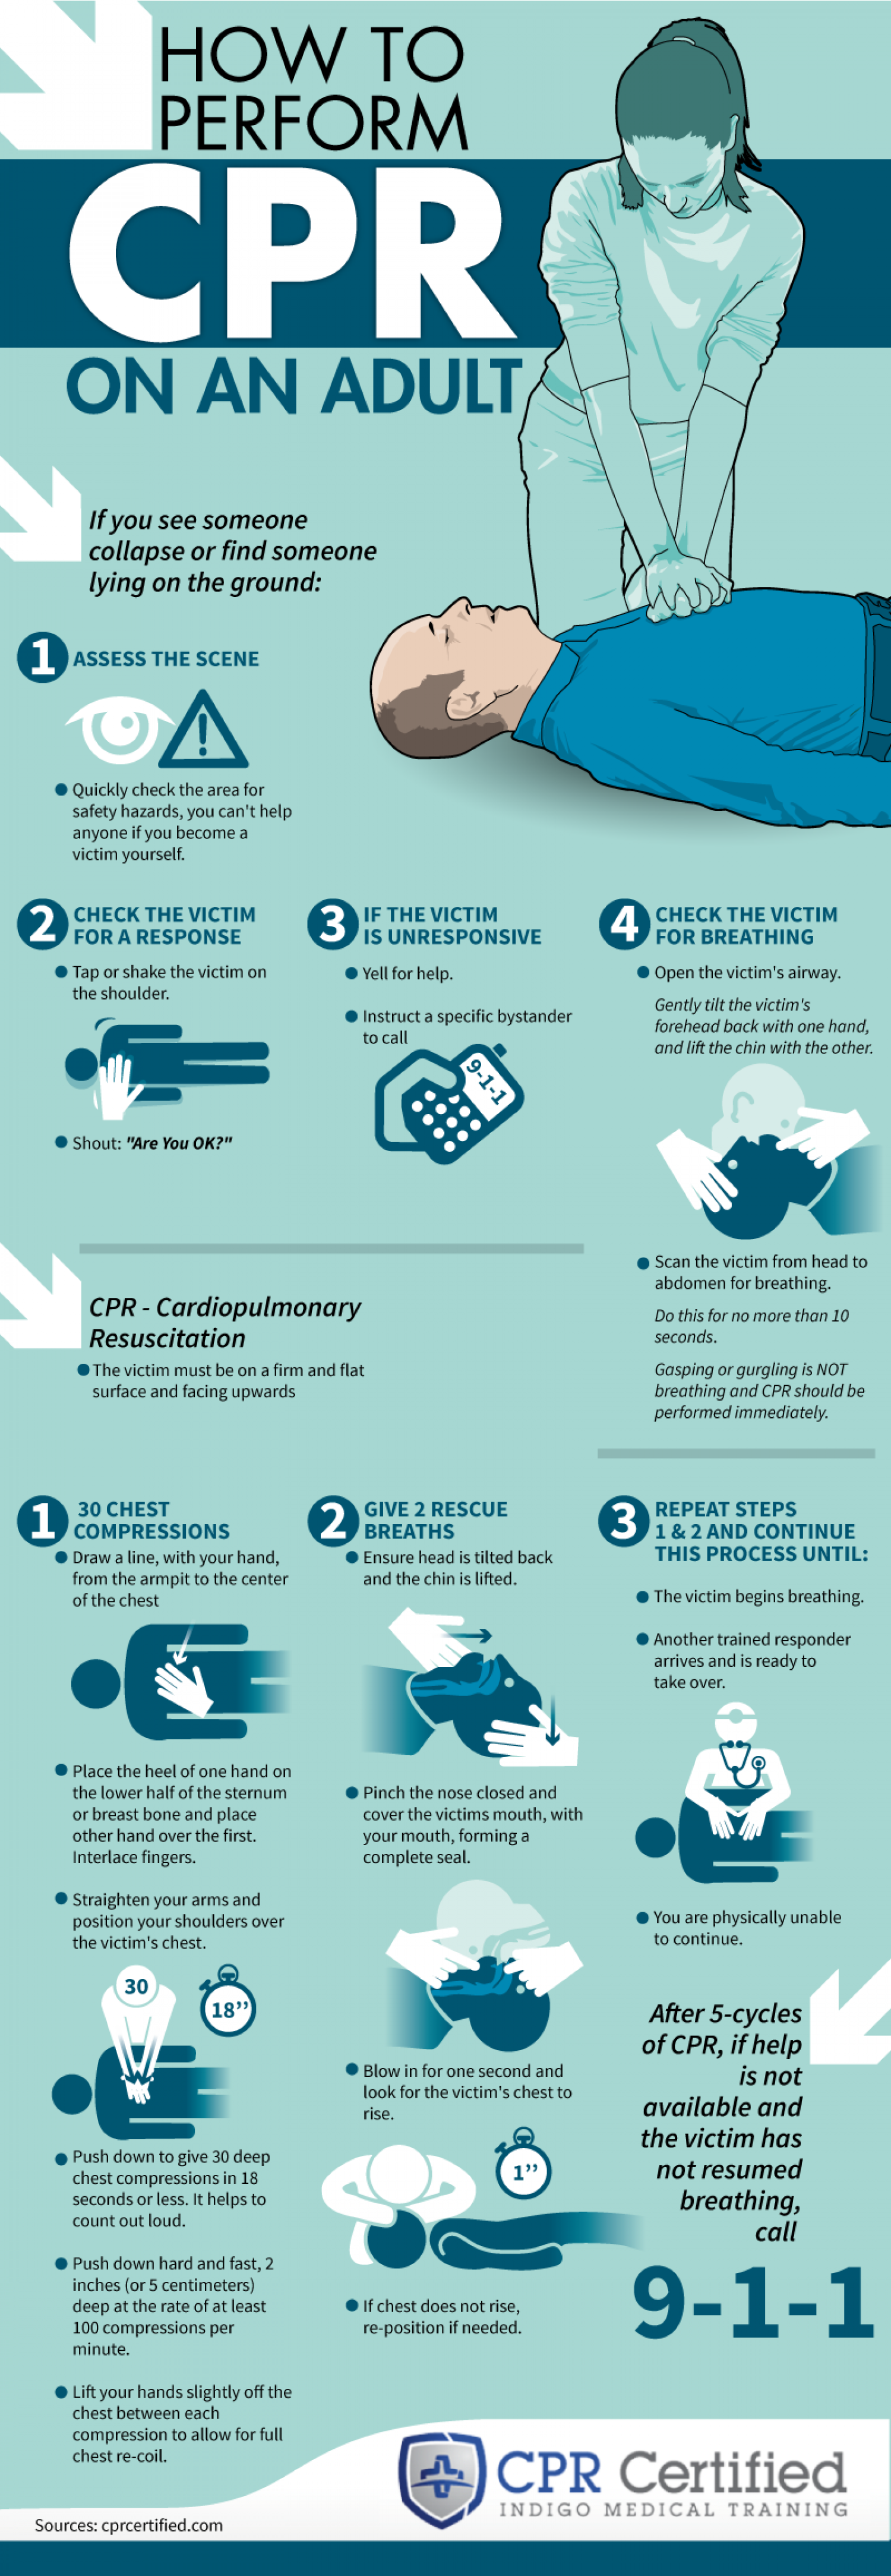 How to Perform CPR on an Adult Infographic